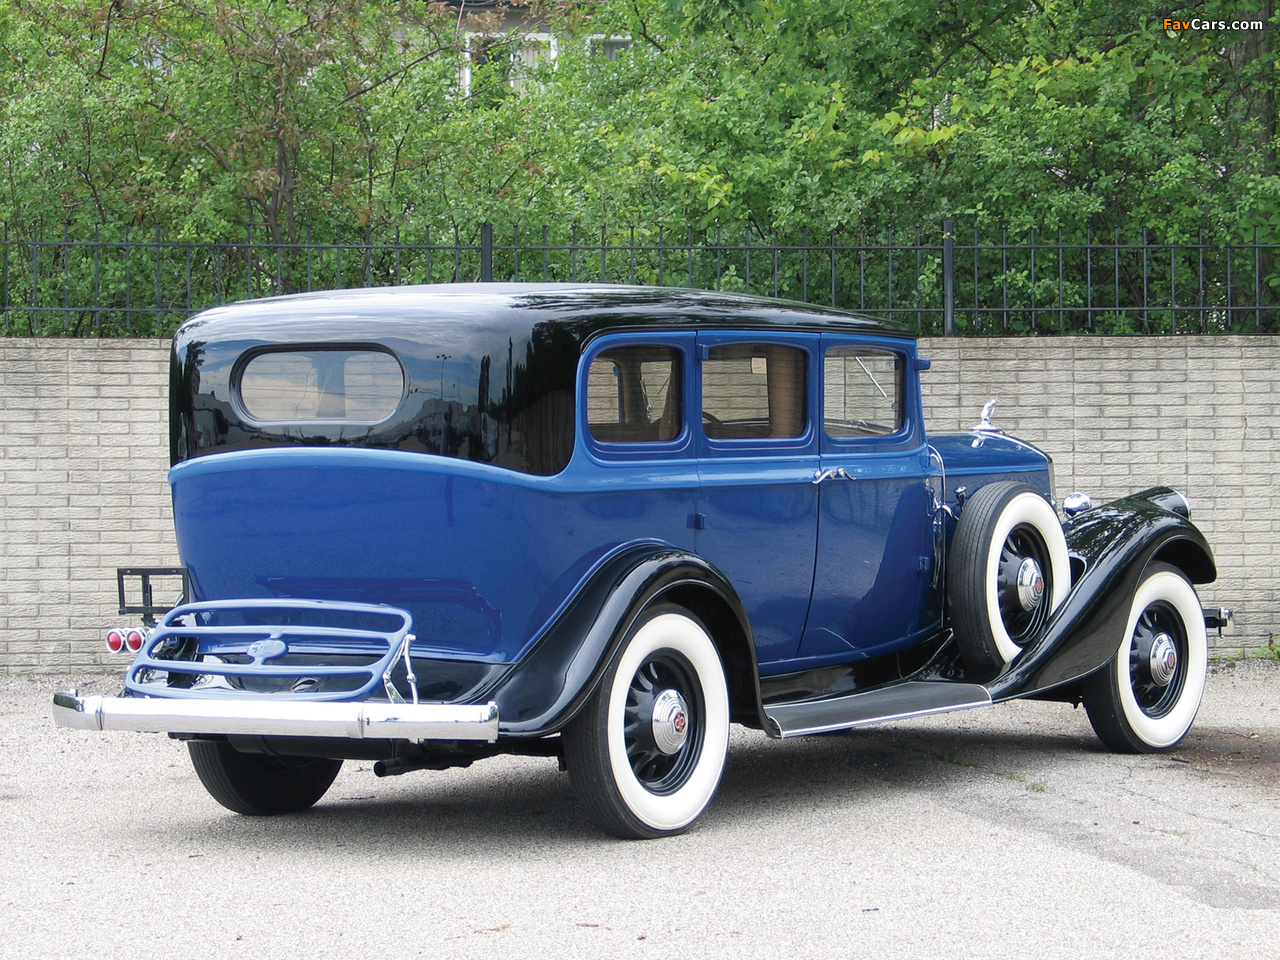 Pierce-Arrow Model 836 Formal Limousine 1933 photos (1280 x 960)